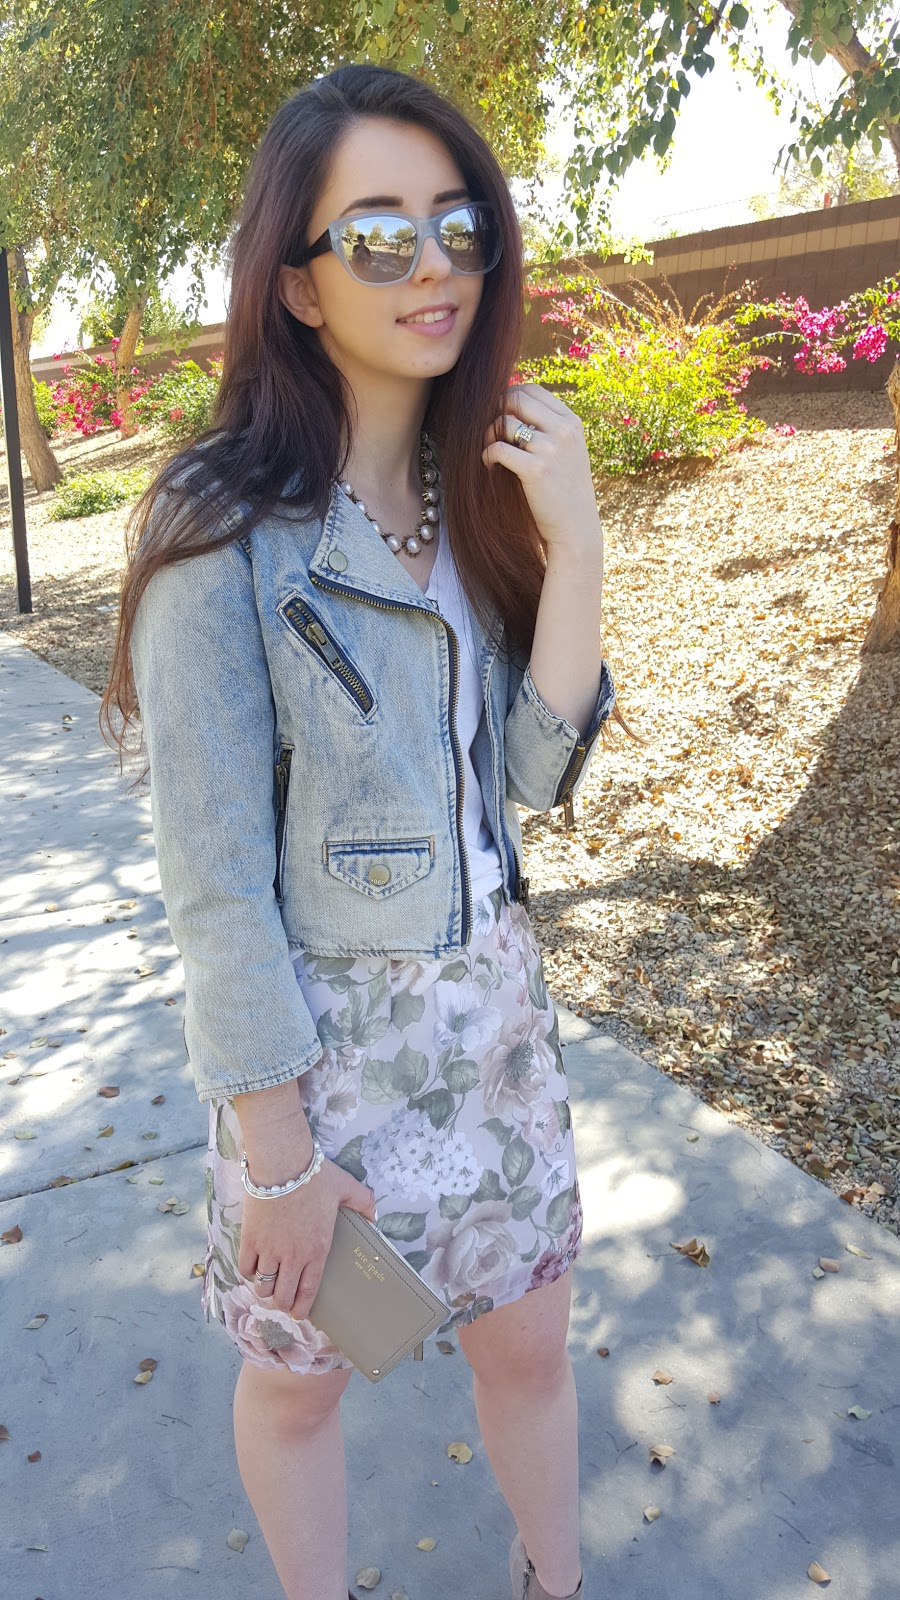 pastel outfit for spring with a denim jacket and reflective sunglasses